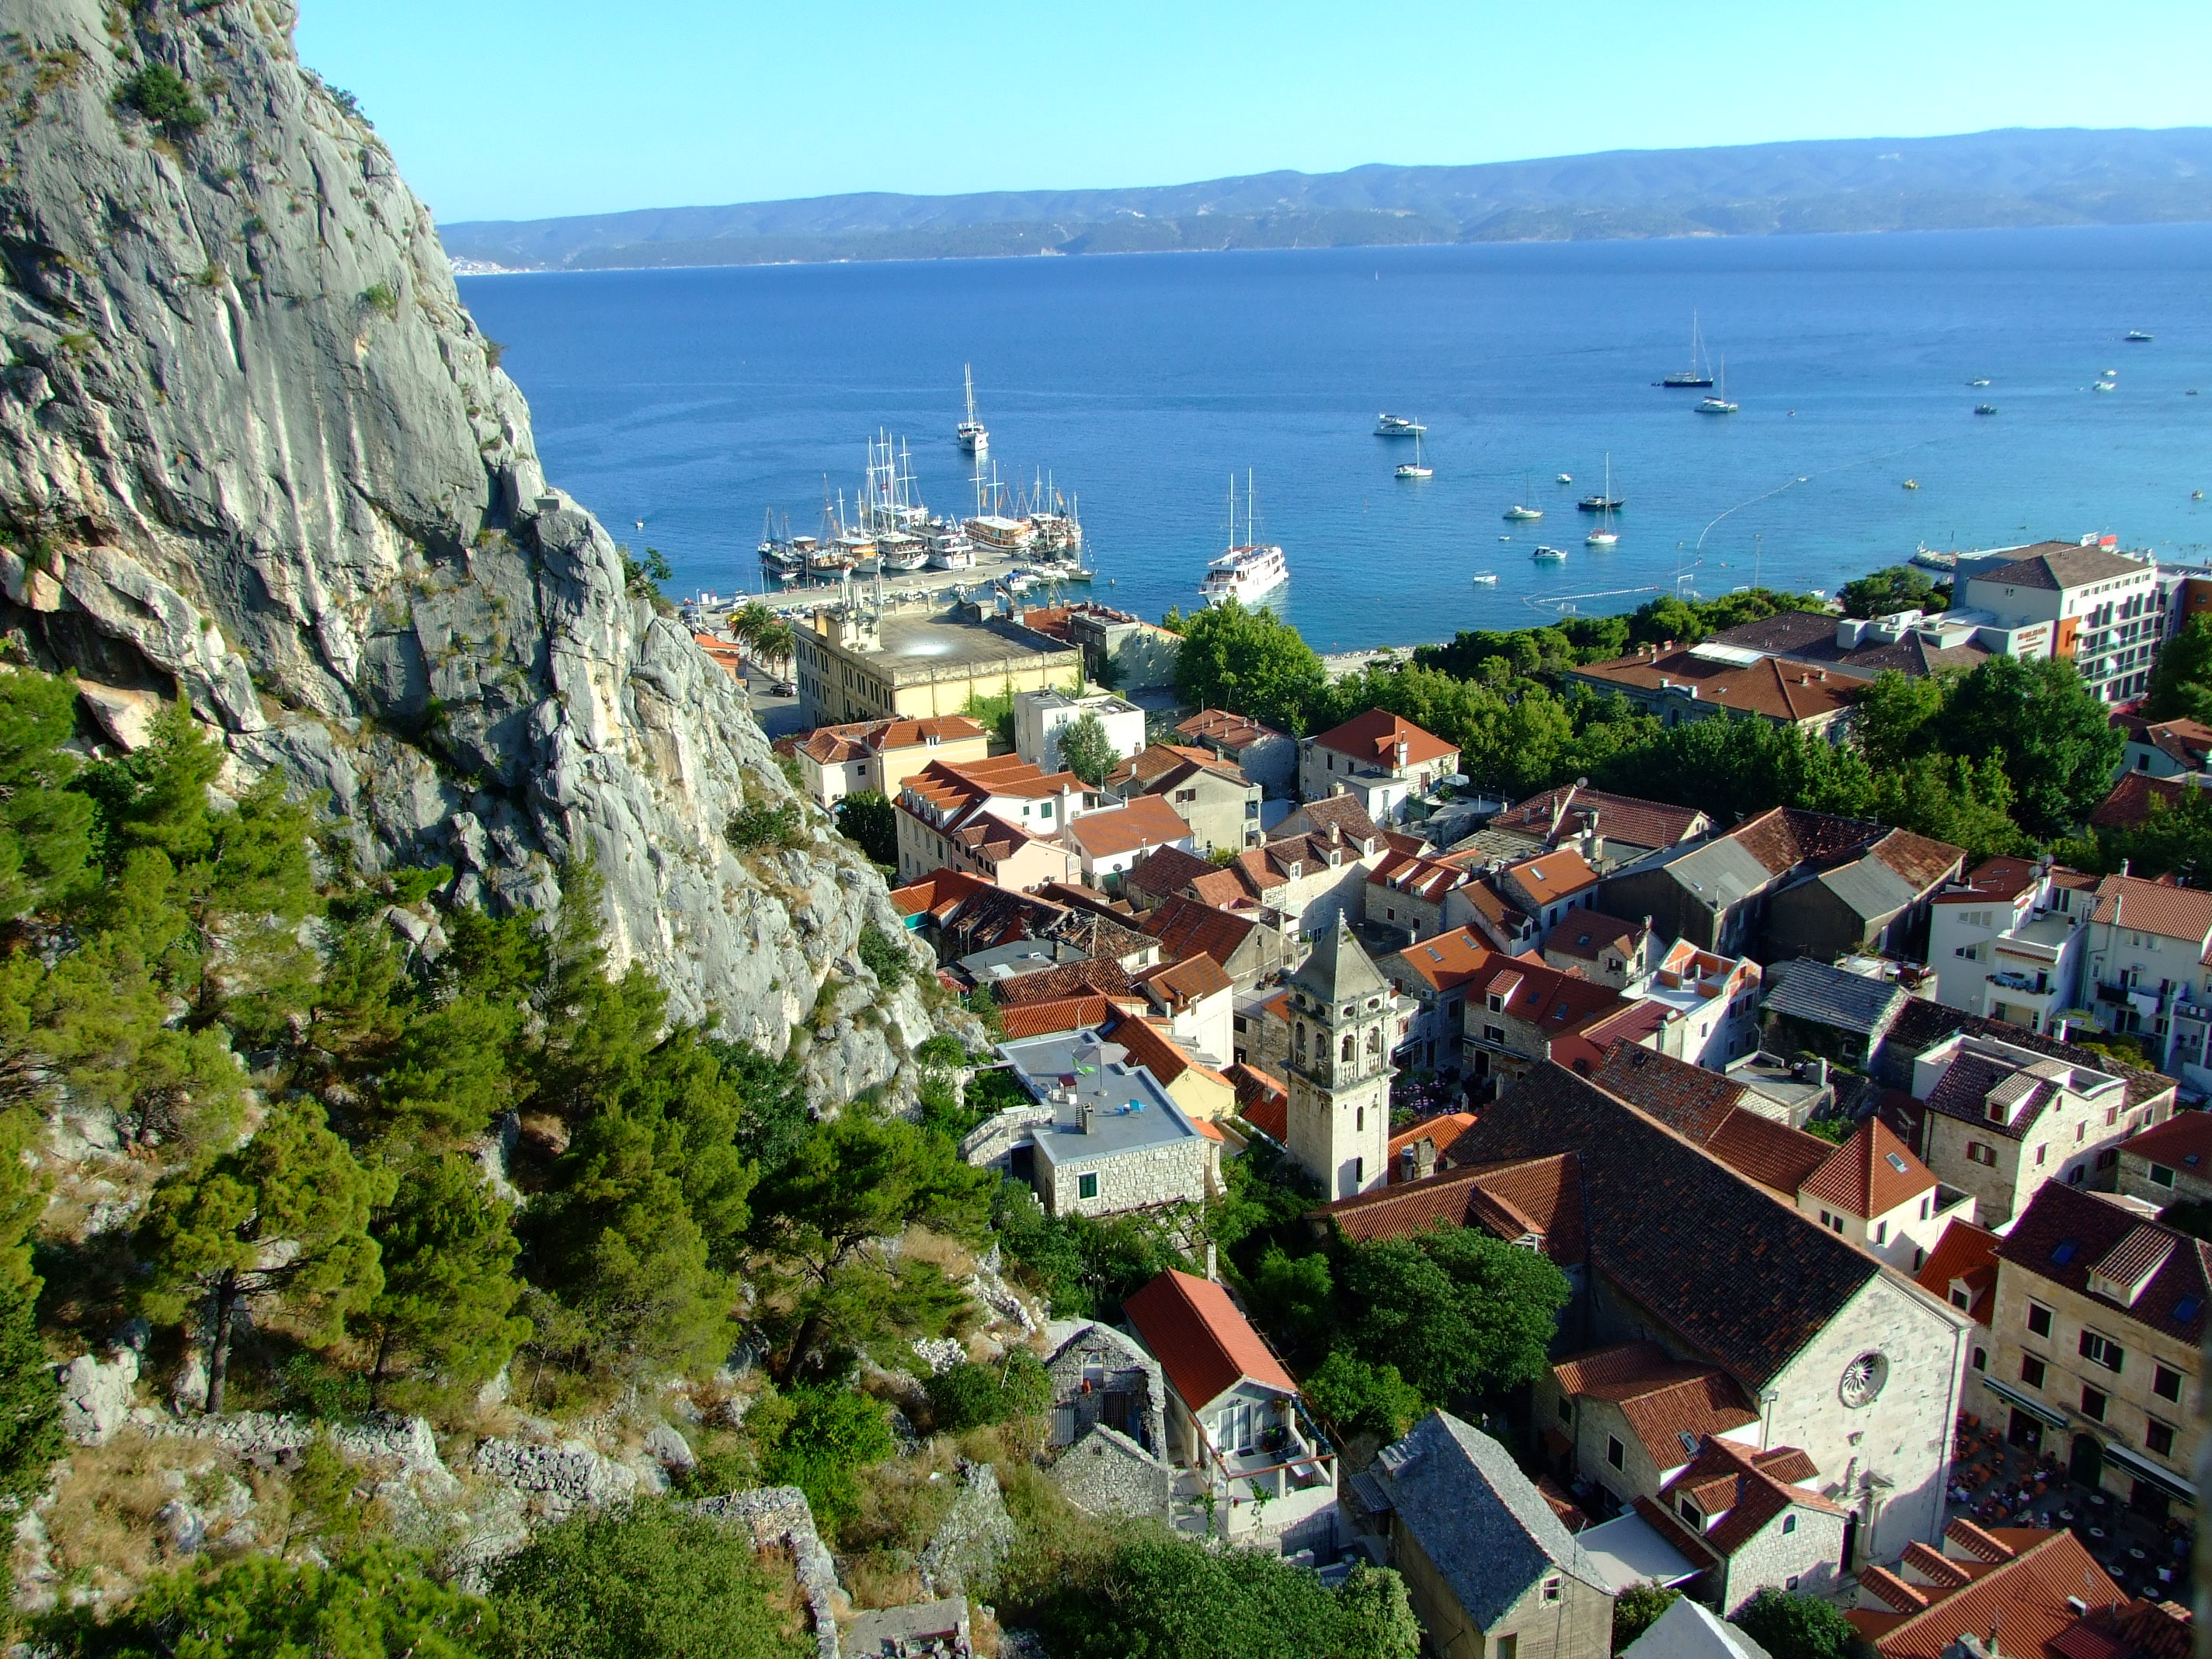 Still looking south over Omiš old town from slightly higher levels of the Utvrda PeovicaMirabela Fortress.